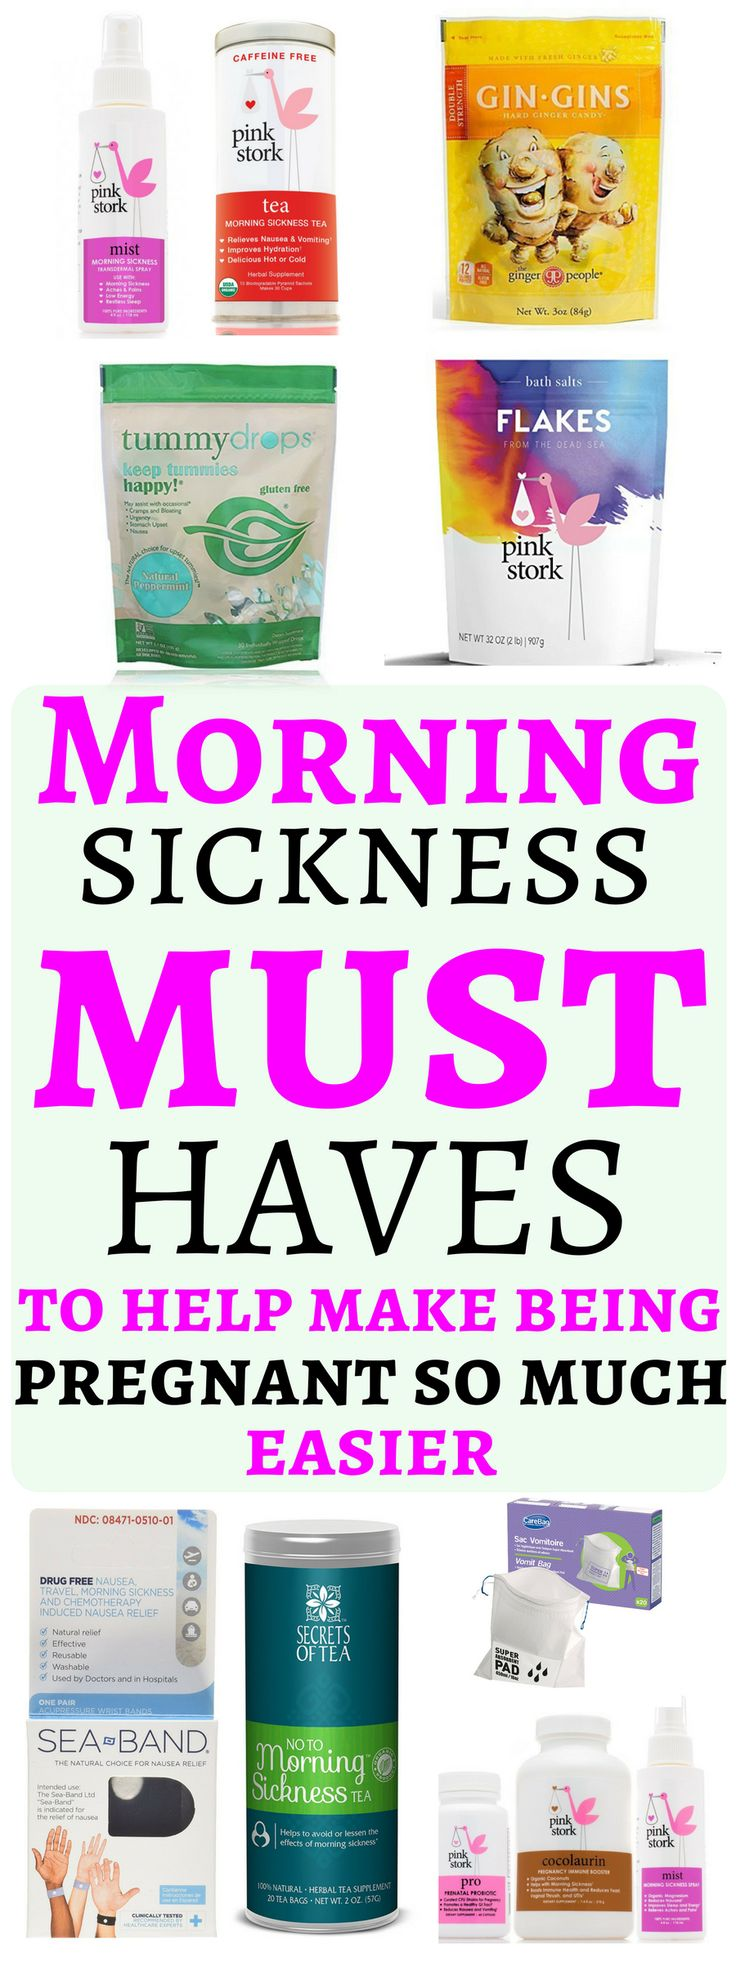 The greatest Morning sickness must haves that provide amazing relief to help make being pregnant so much easier. In this article you will fine an amazing selection of twelve Morning sickness must haves, that has helped pregnant women with morning sickness that range from mild, occasional, severe, ongoing and disabling nausea with vomiting. Morning sickness must haves to help make being pregnant so much easier #morningsickness #pregnancy #pregnant #pregnantlife #postpartum